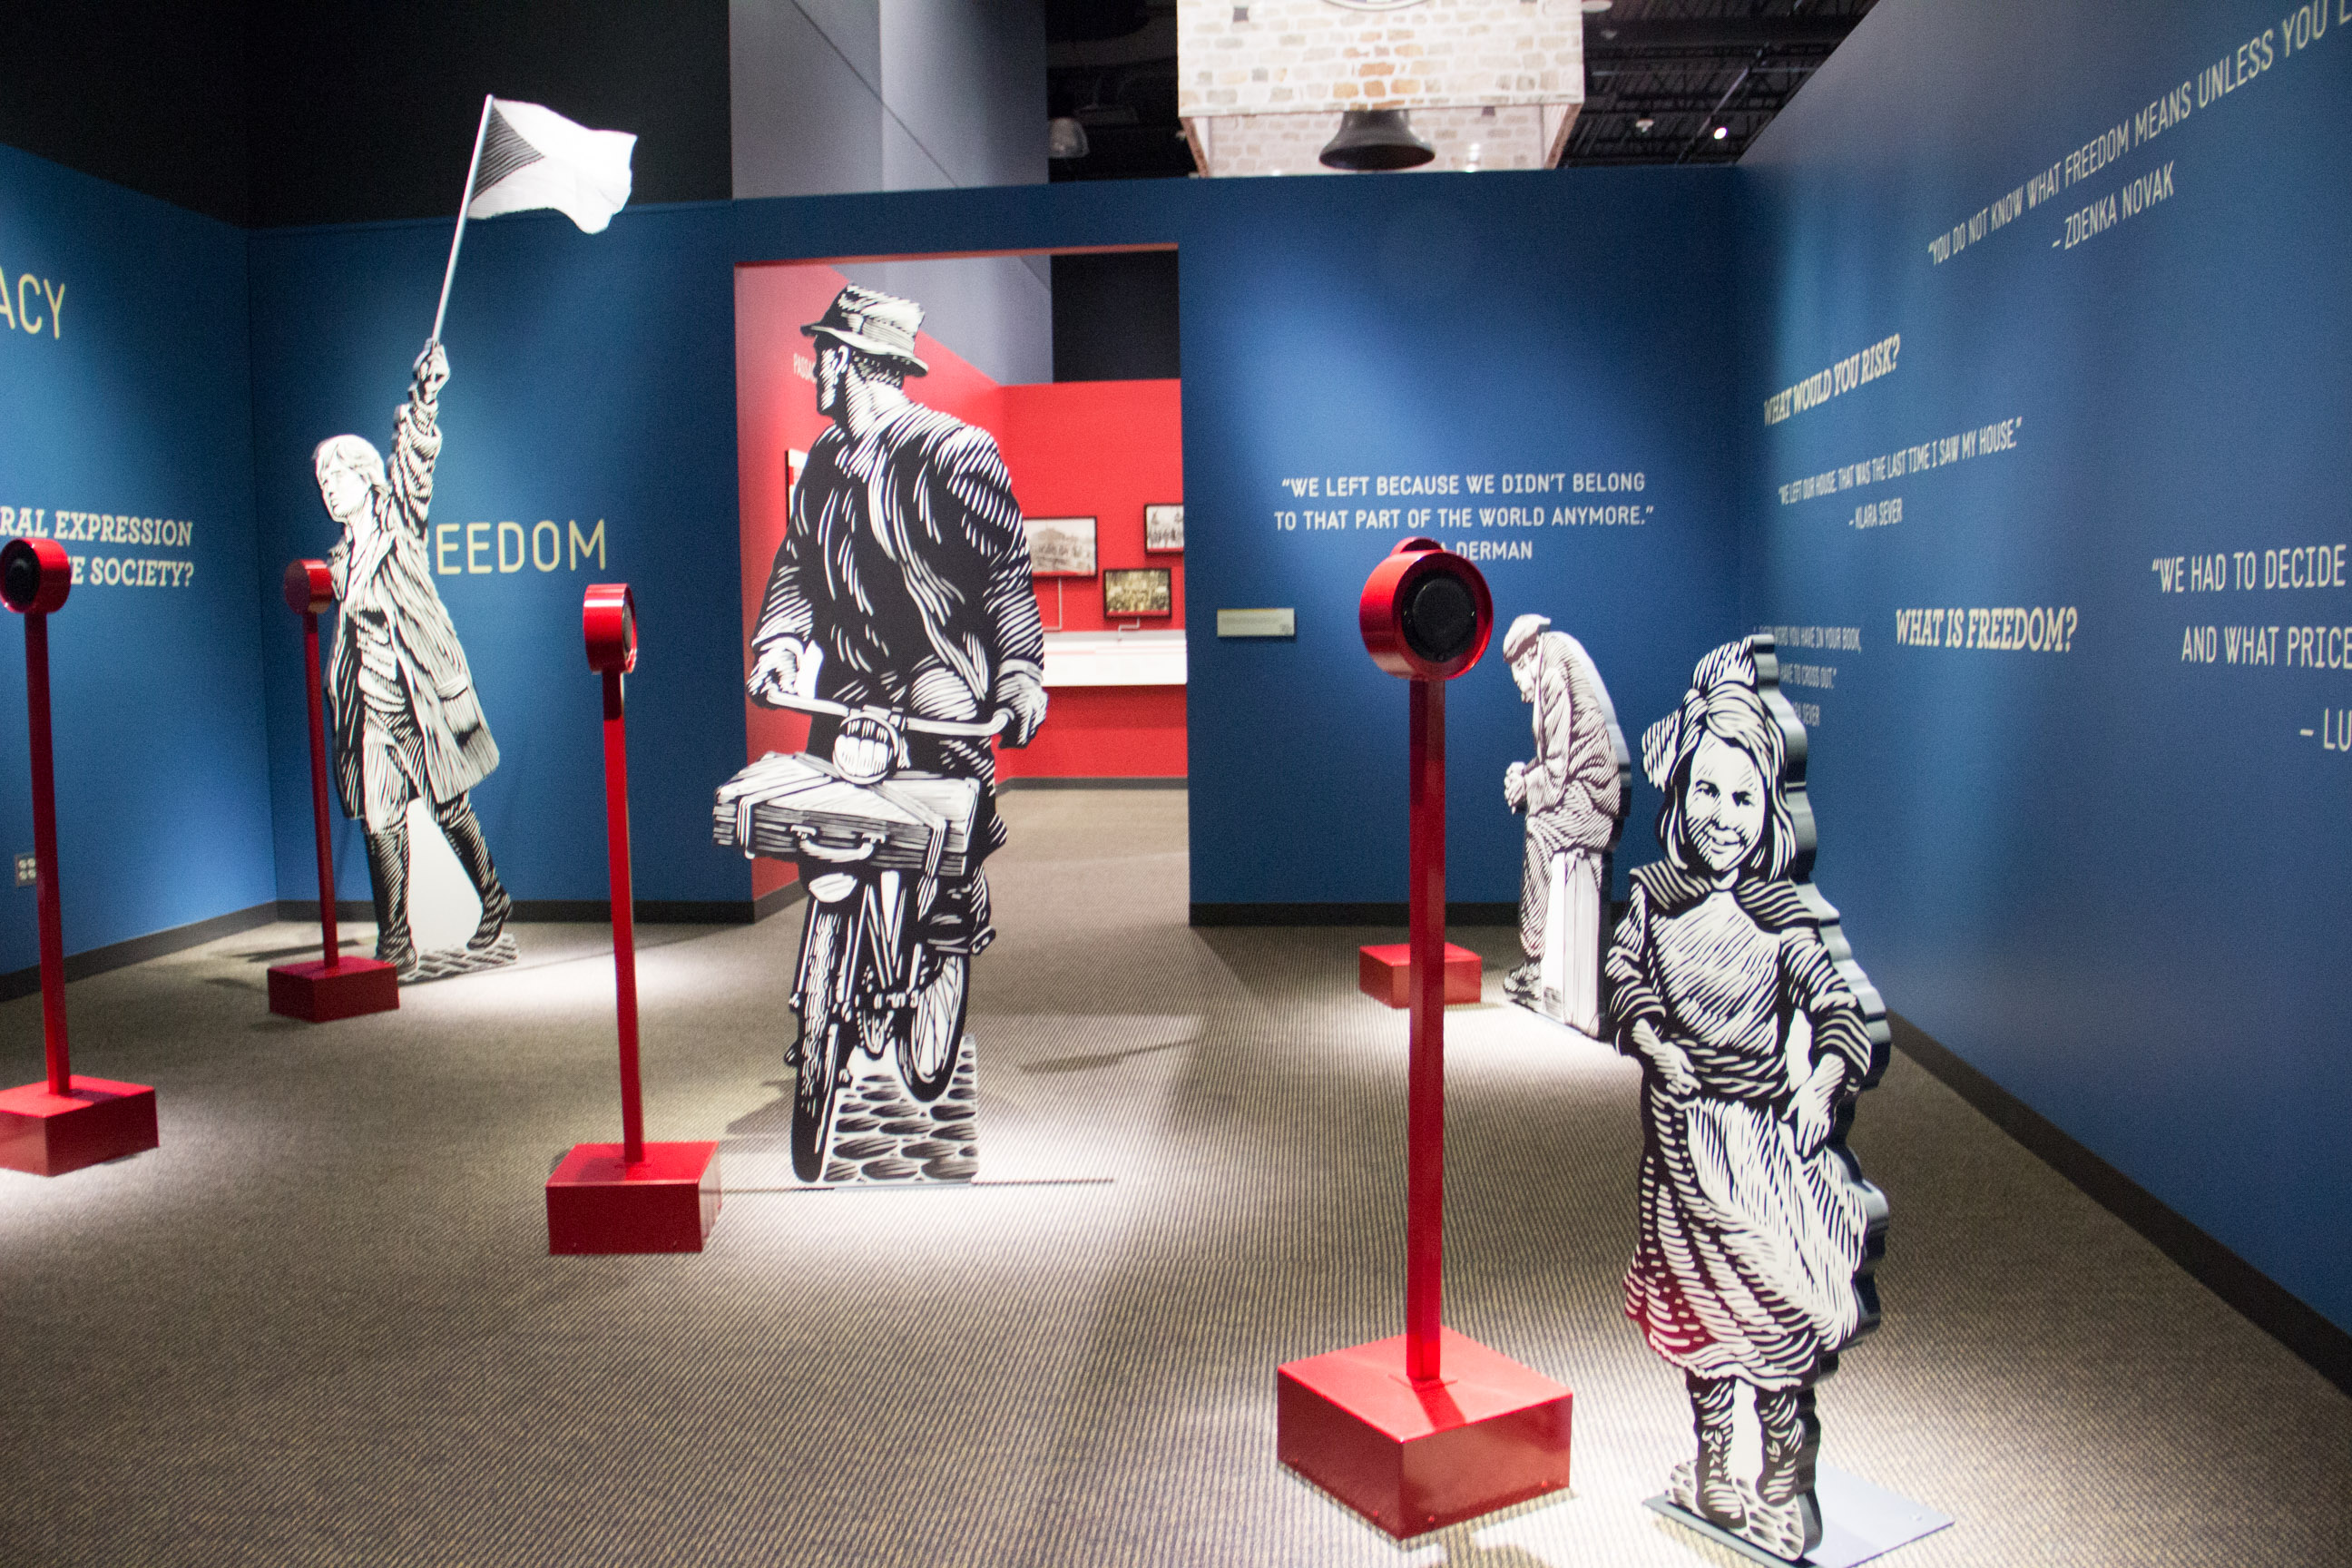 Natl Czech and Slovak Museum Faces of Freedom